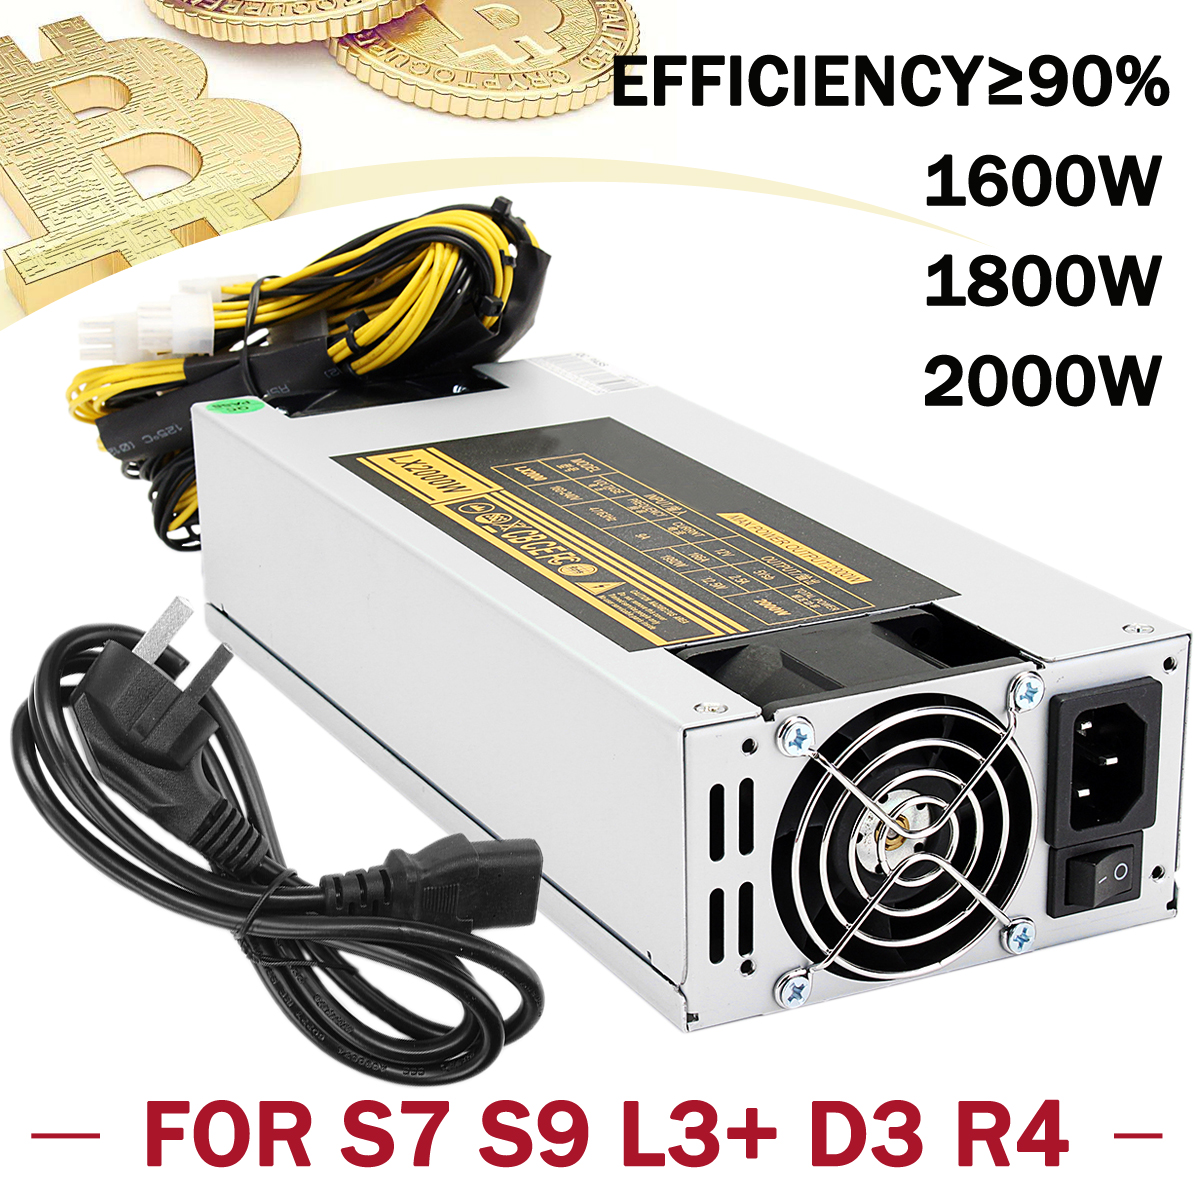 Leory 1600W/1800W/2000W Mining Power Supply Power Mining Machine Mining Rig for ETH BTC Coin For S7 S9 L3+ D3 R4